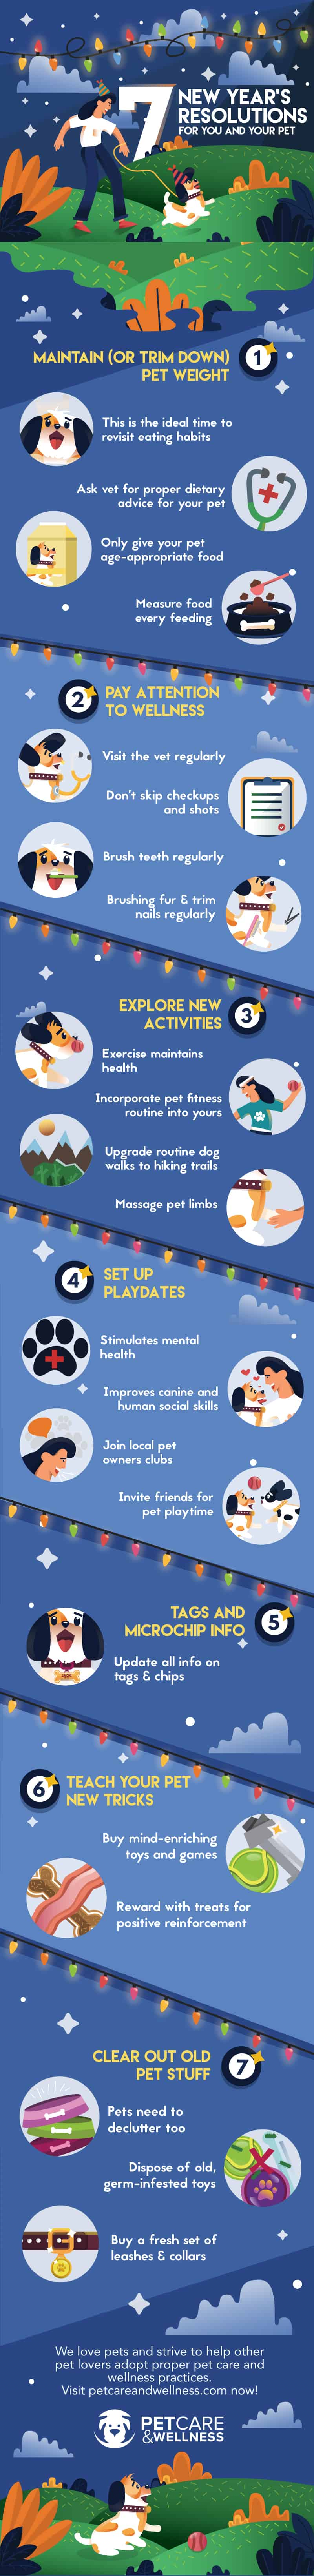 7 New Year?s Resolution for You and Your Pet | Pet Care and Wellness